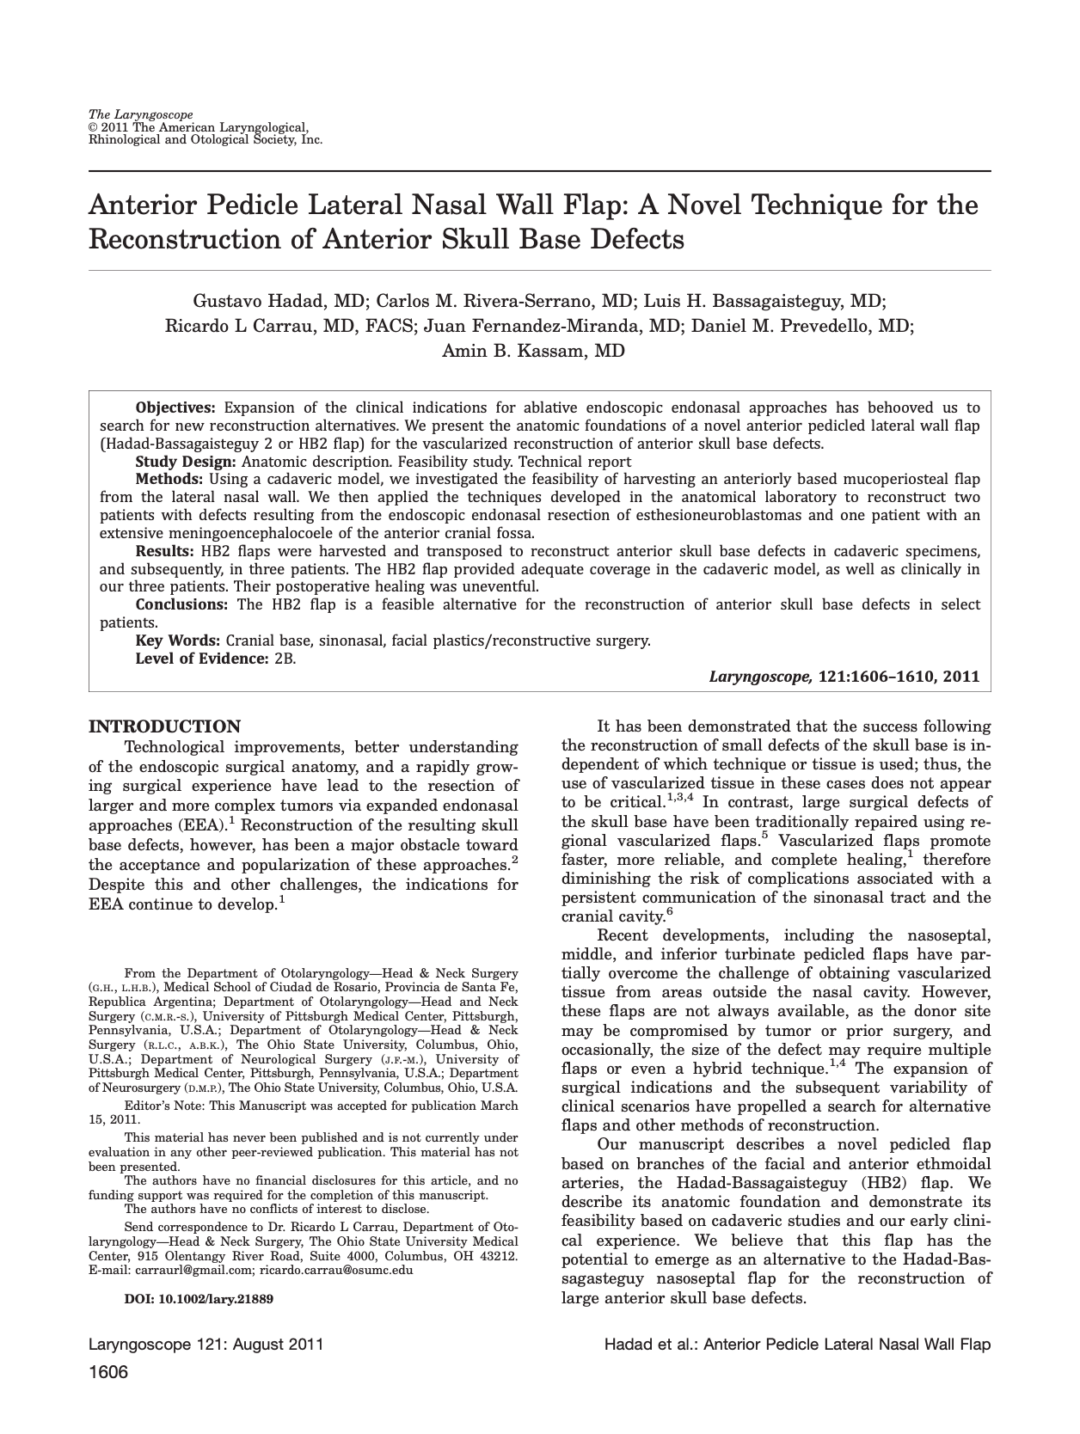 Anterior Pedicle Lateral Nasal Wall Flap: A Novel Technique for the Reconstruction of Anterior Skull Base Defects